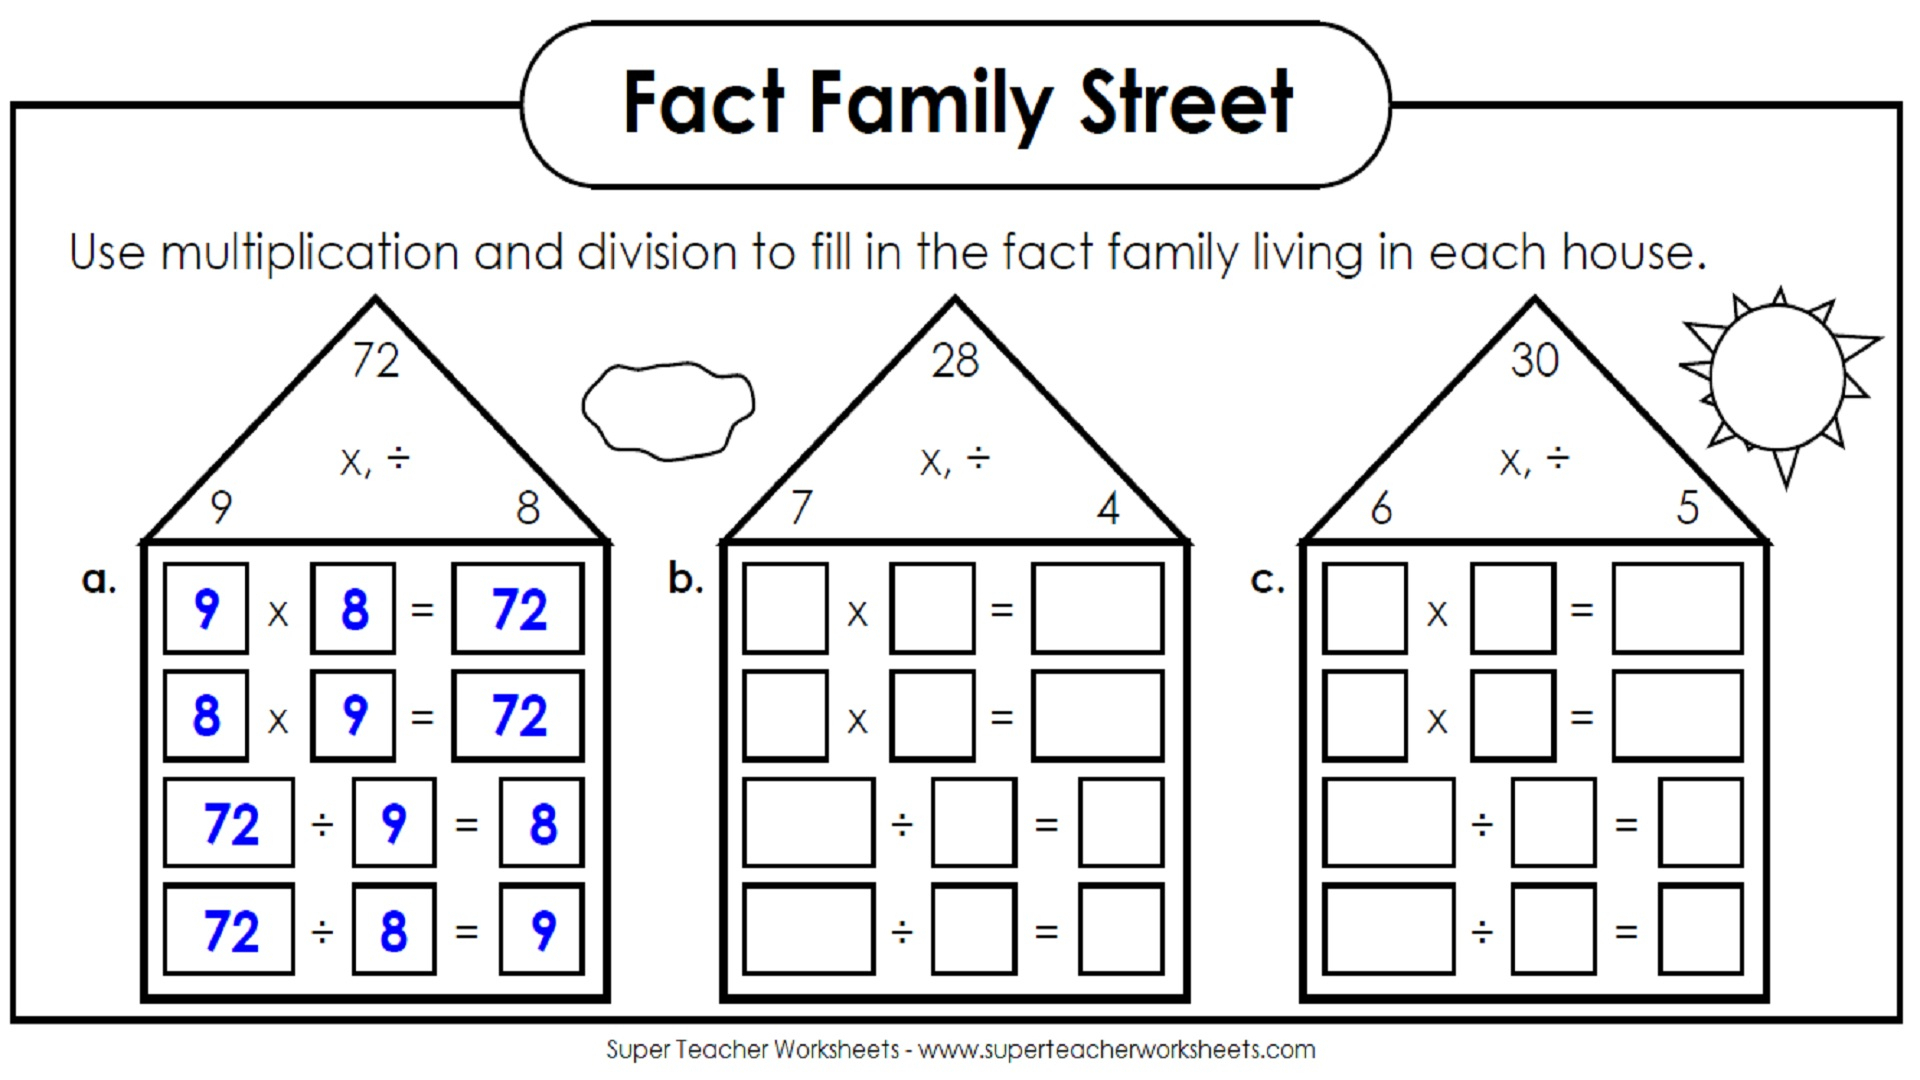 Worksheet Ideas ~ Worksheet Ideas Incredibleon And Division throughout Worksheets Relating Multiplication And Division